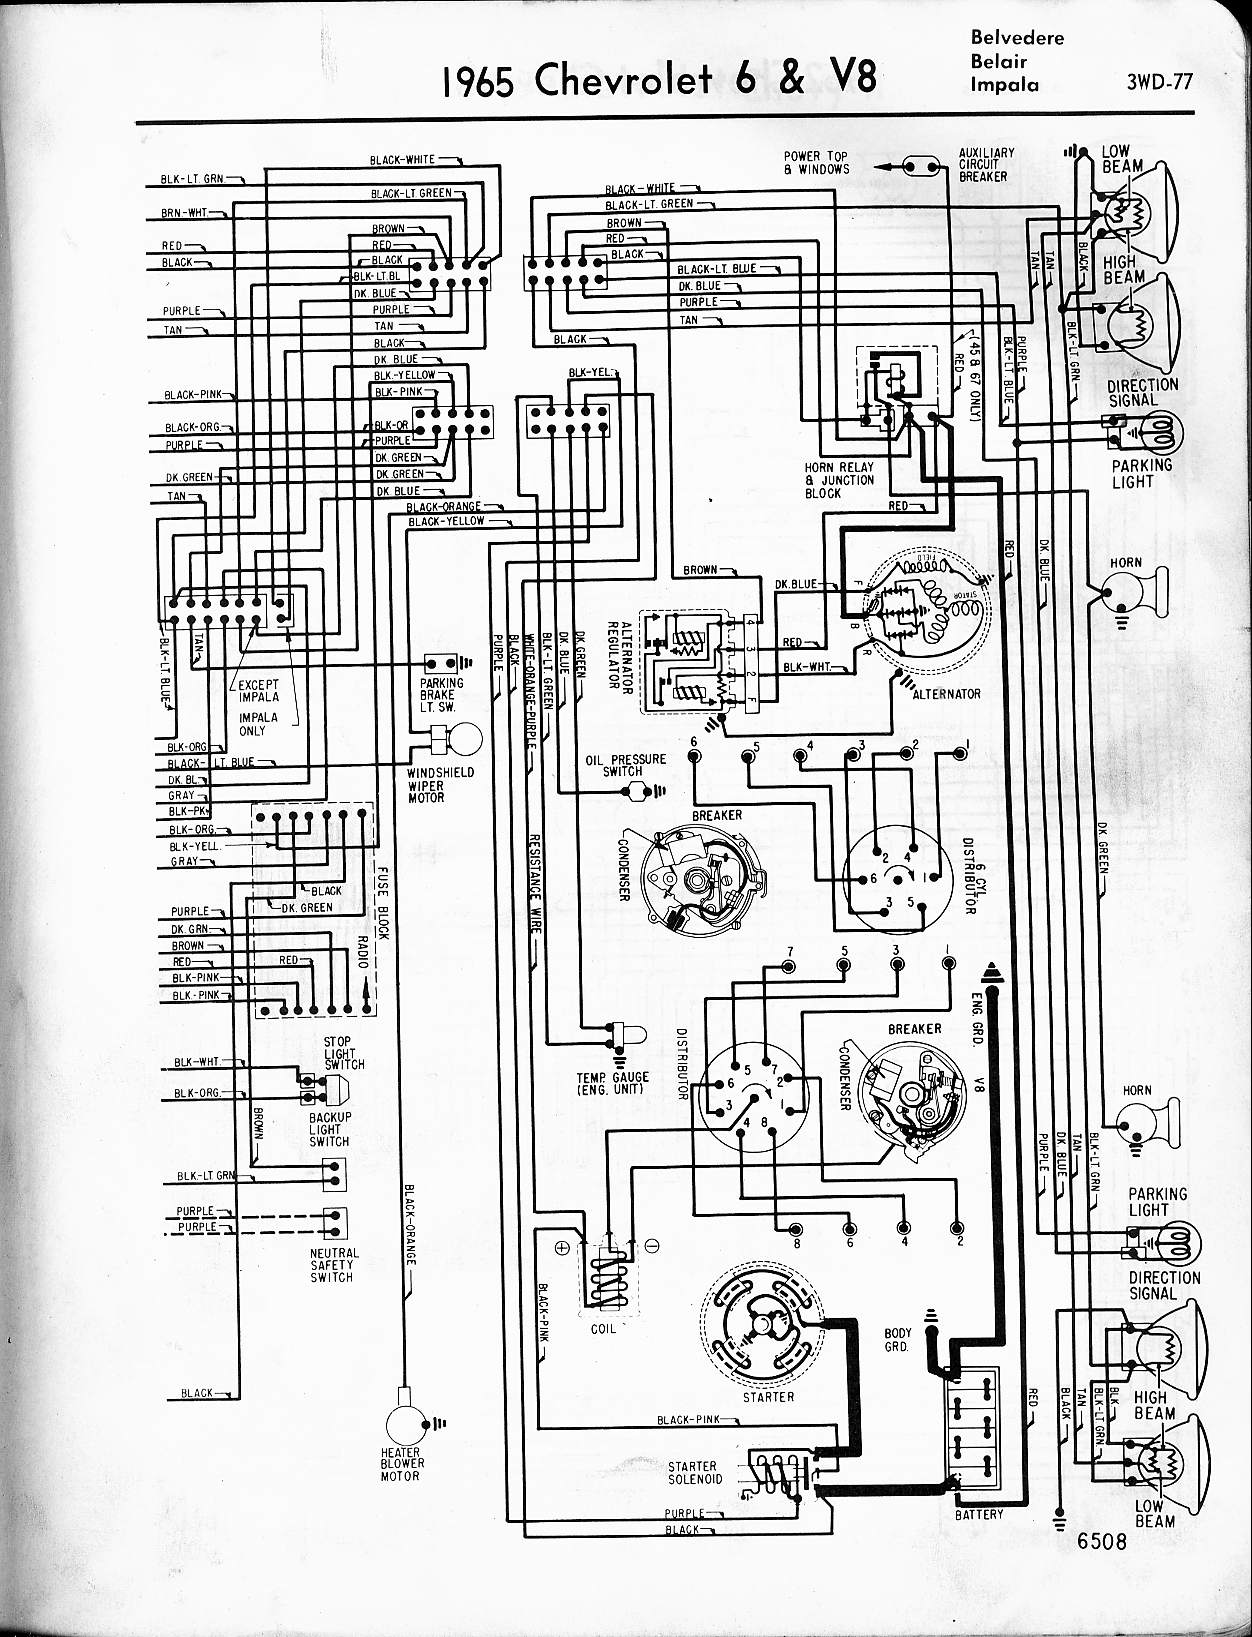 MWireChev65_3WD 077 1965 impala wiring harness 65 chevrolet impala \u2022 wiring diagrams 68 gmc wiring diagram at bayanpartner.co